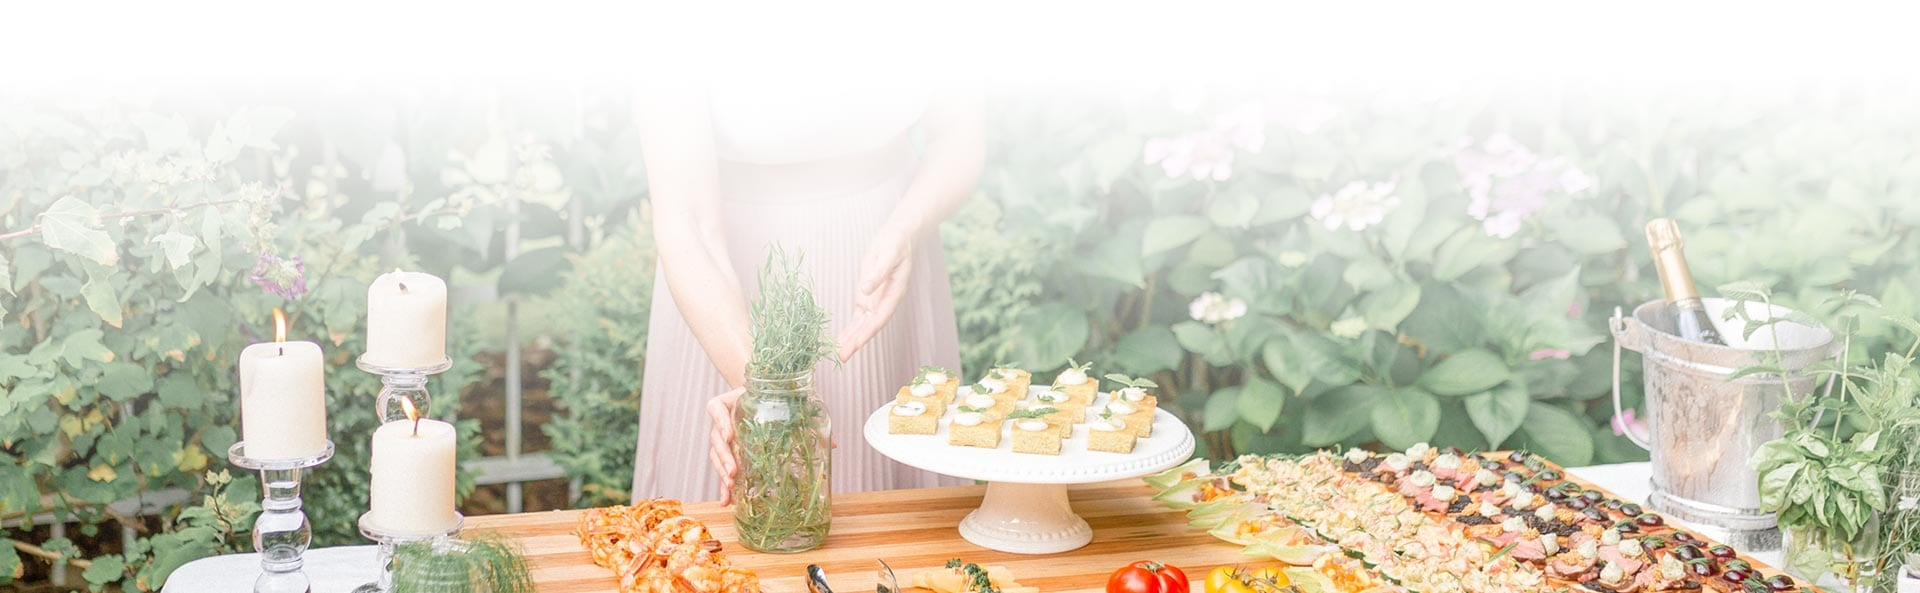 whiterock-catering-services